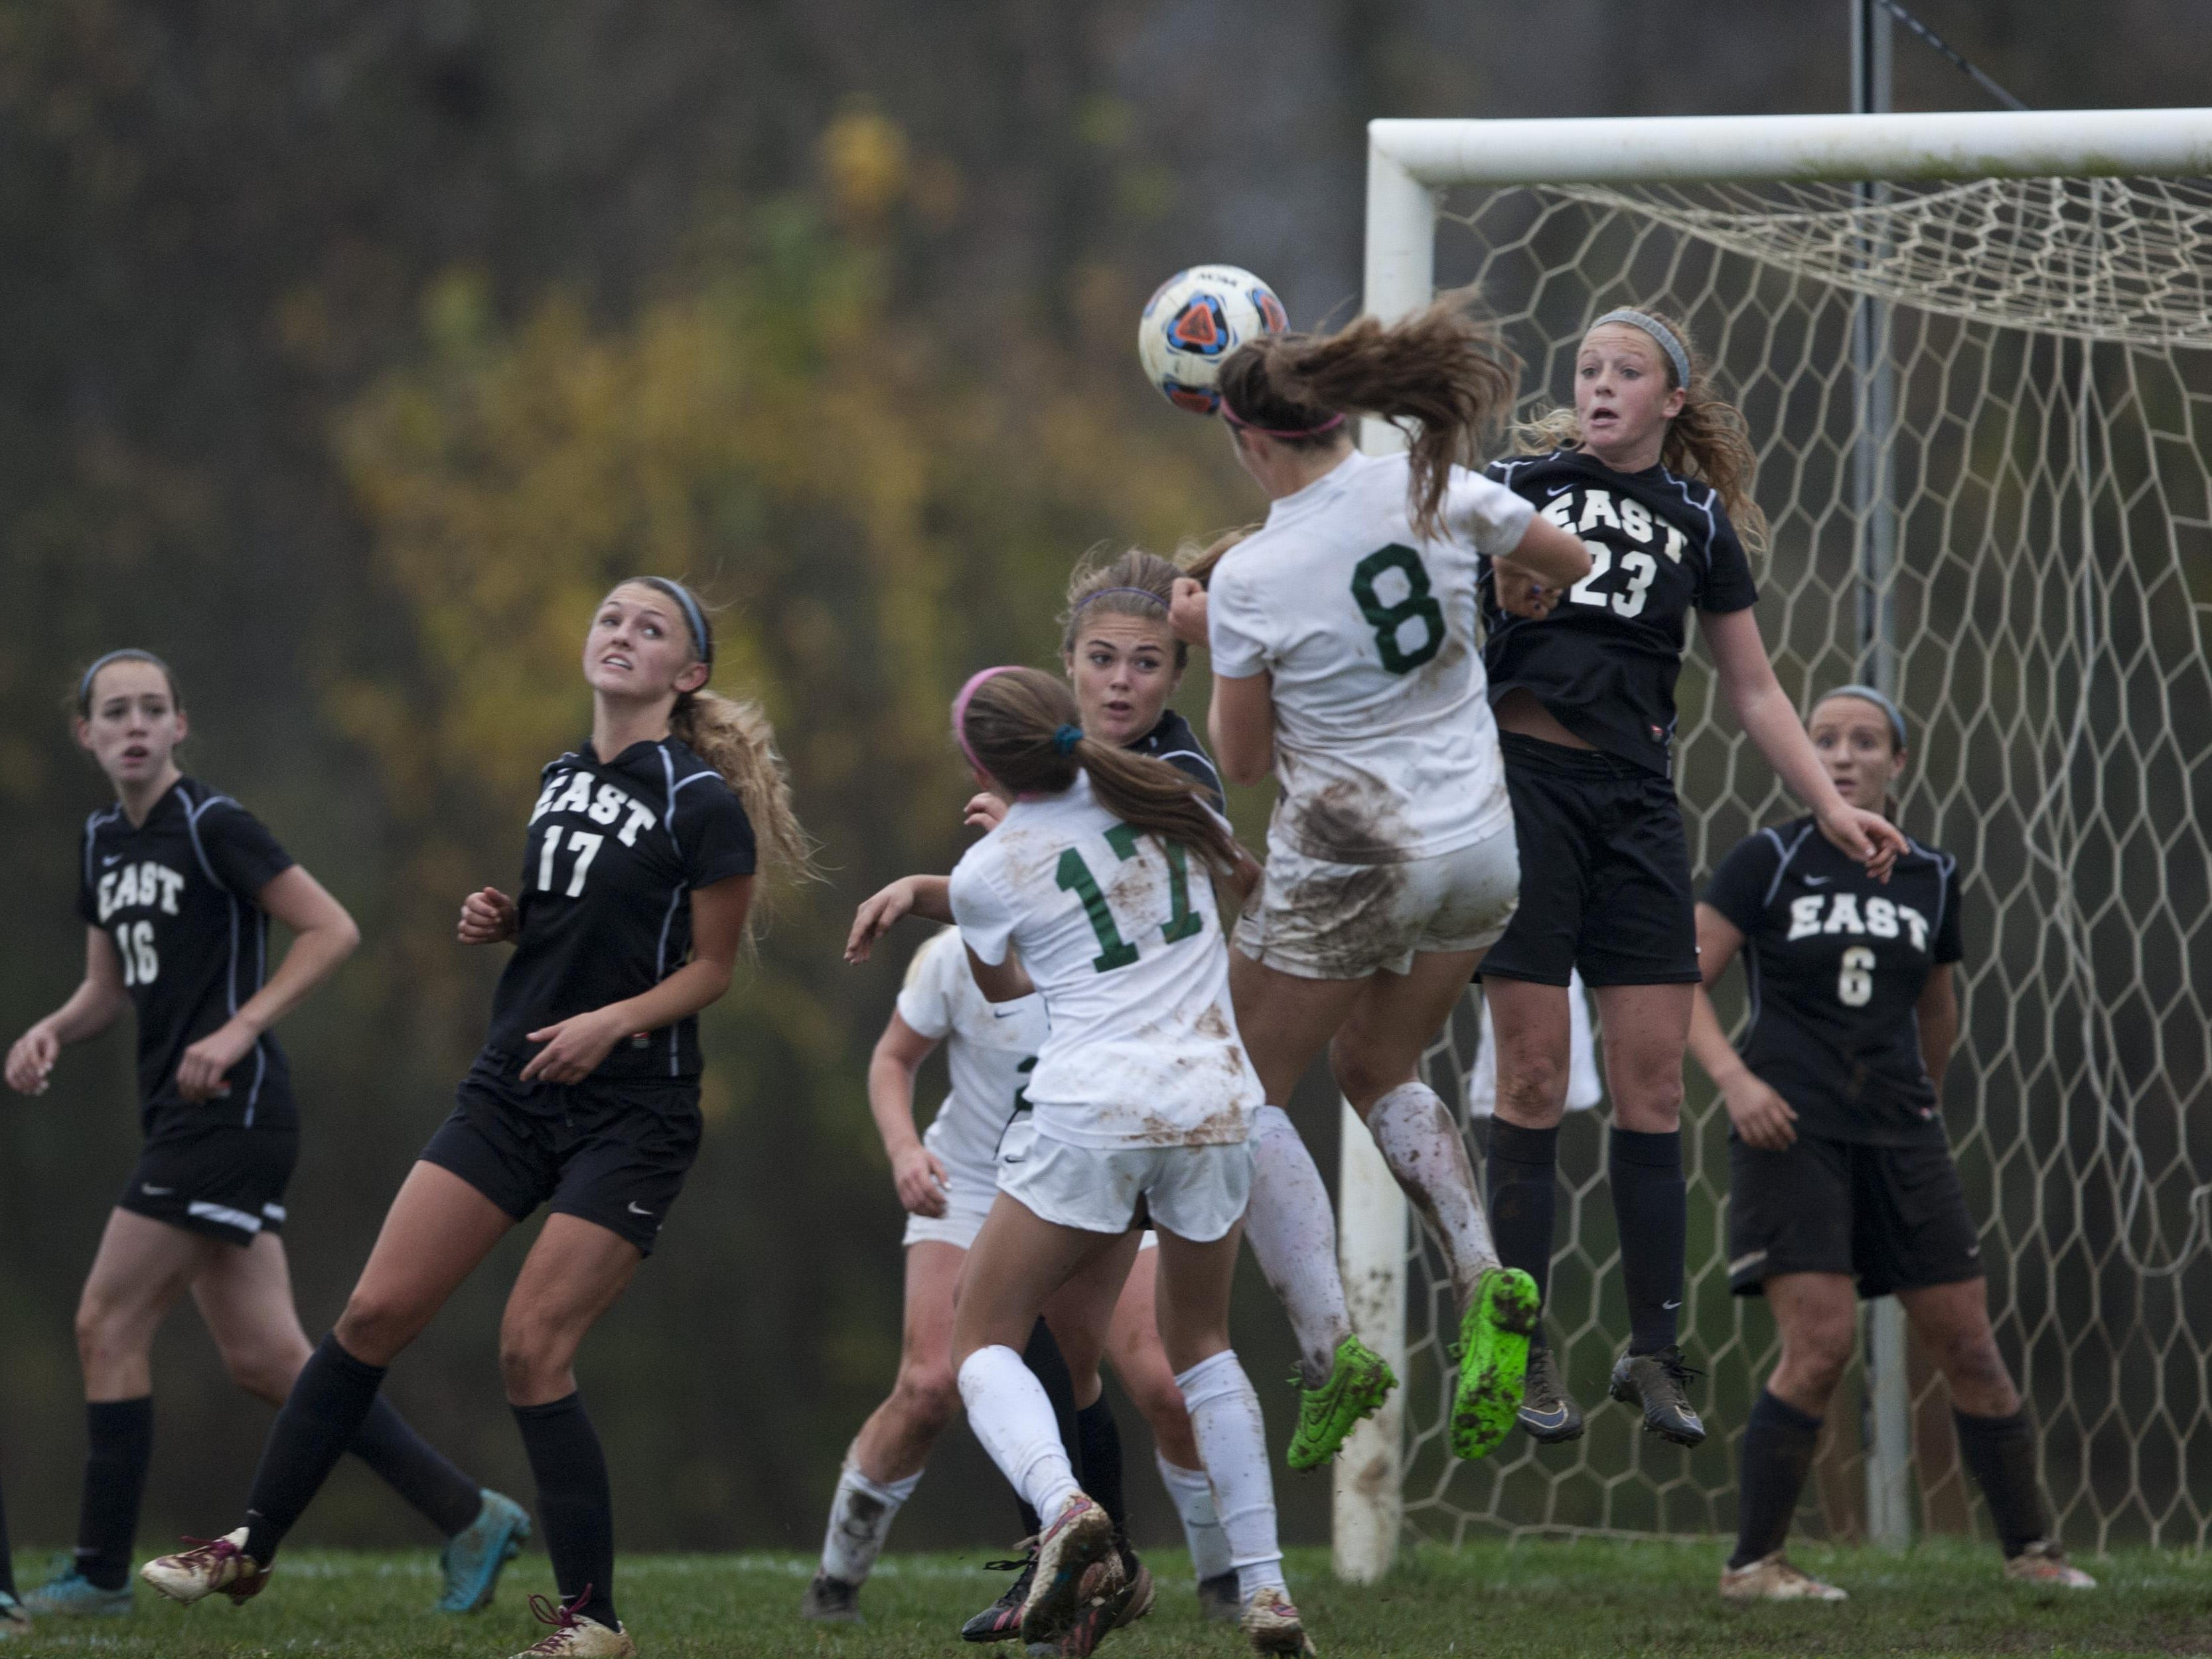 Colts Neck's Amanda Visco heads in here team's second goal of game. Colts Neck defeats Toms River East in NJSIAA girls soccer Central Group III final in Colts Neck on November 12, 2015